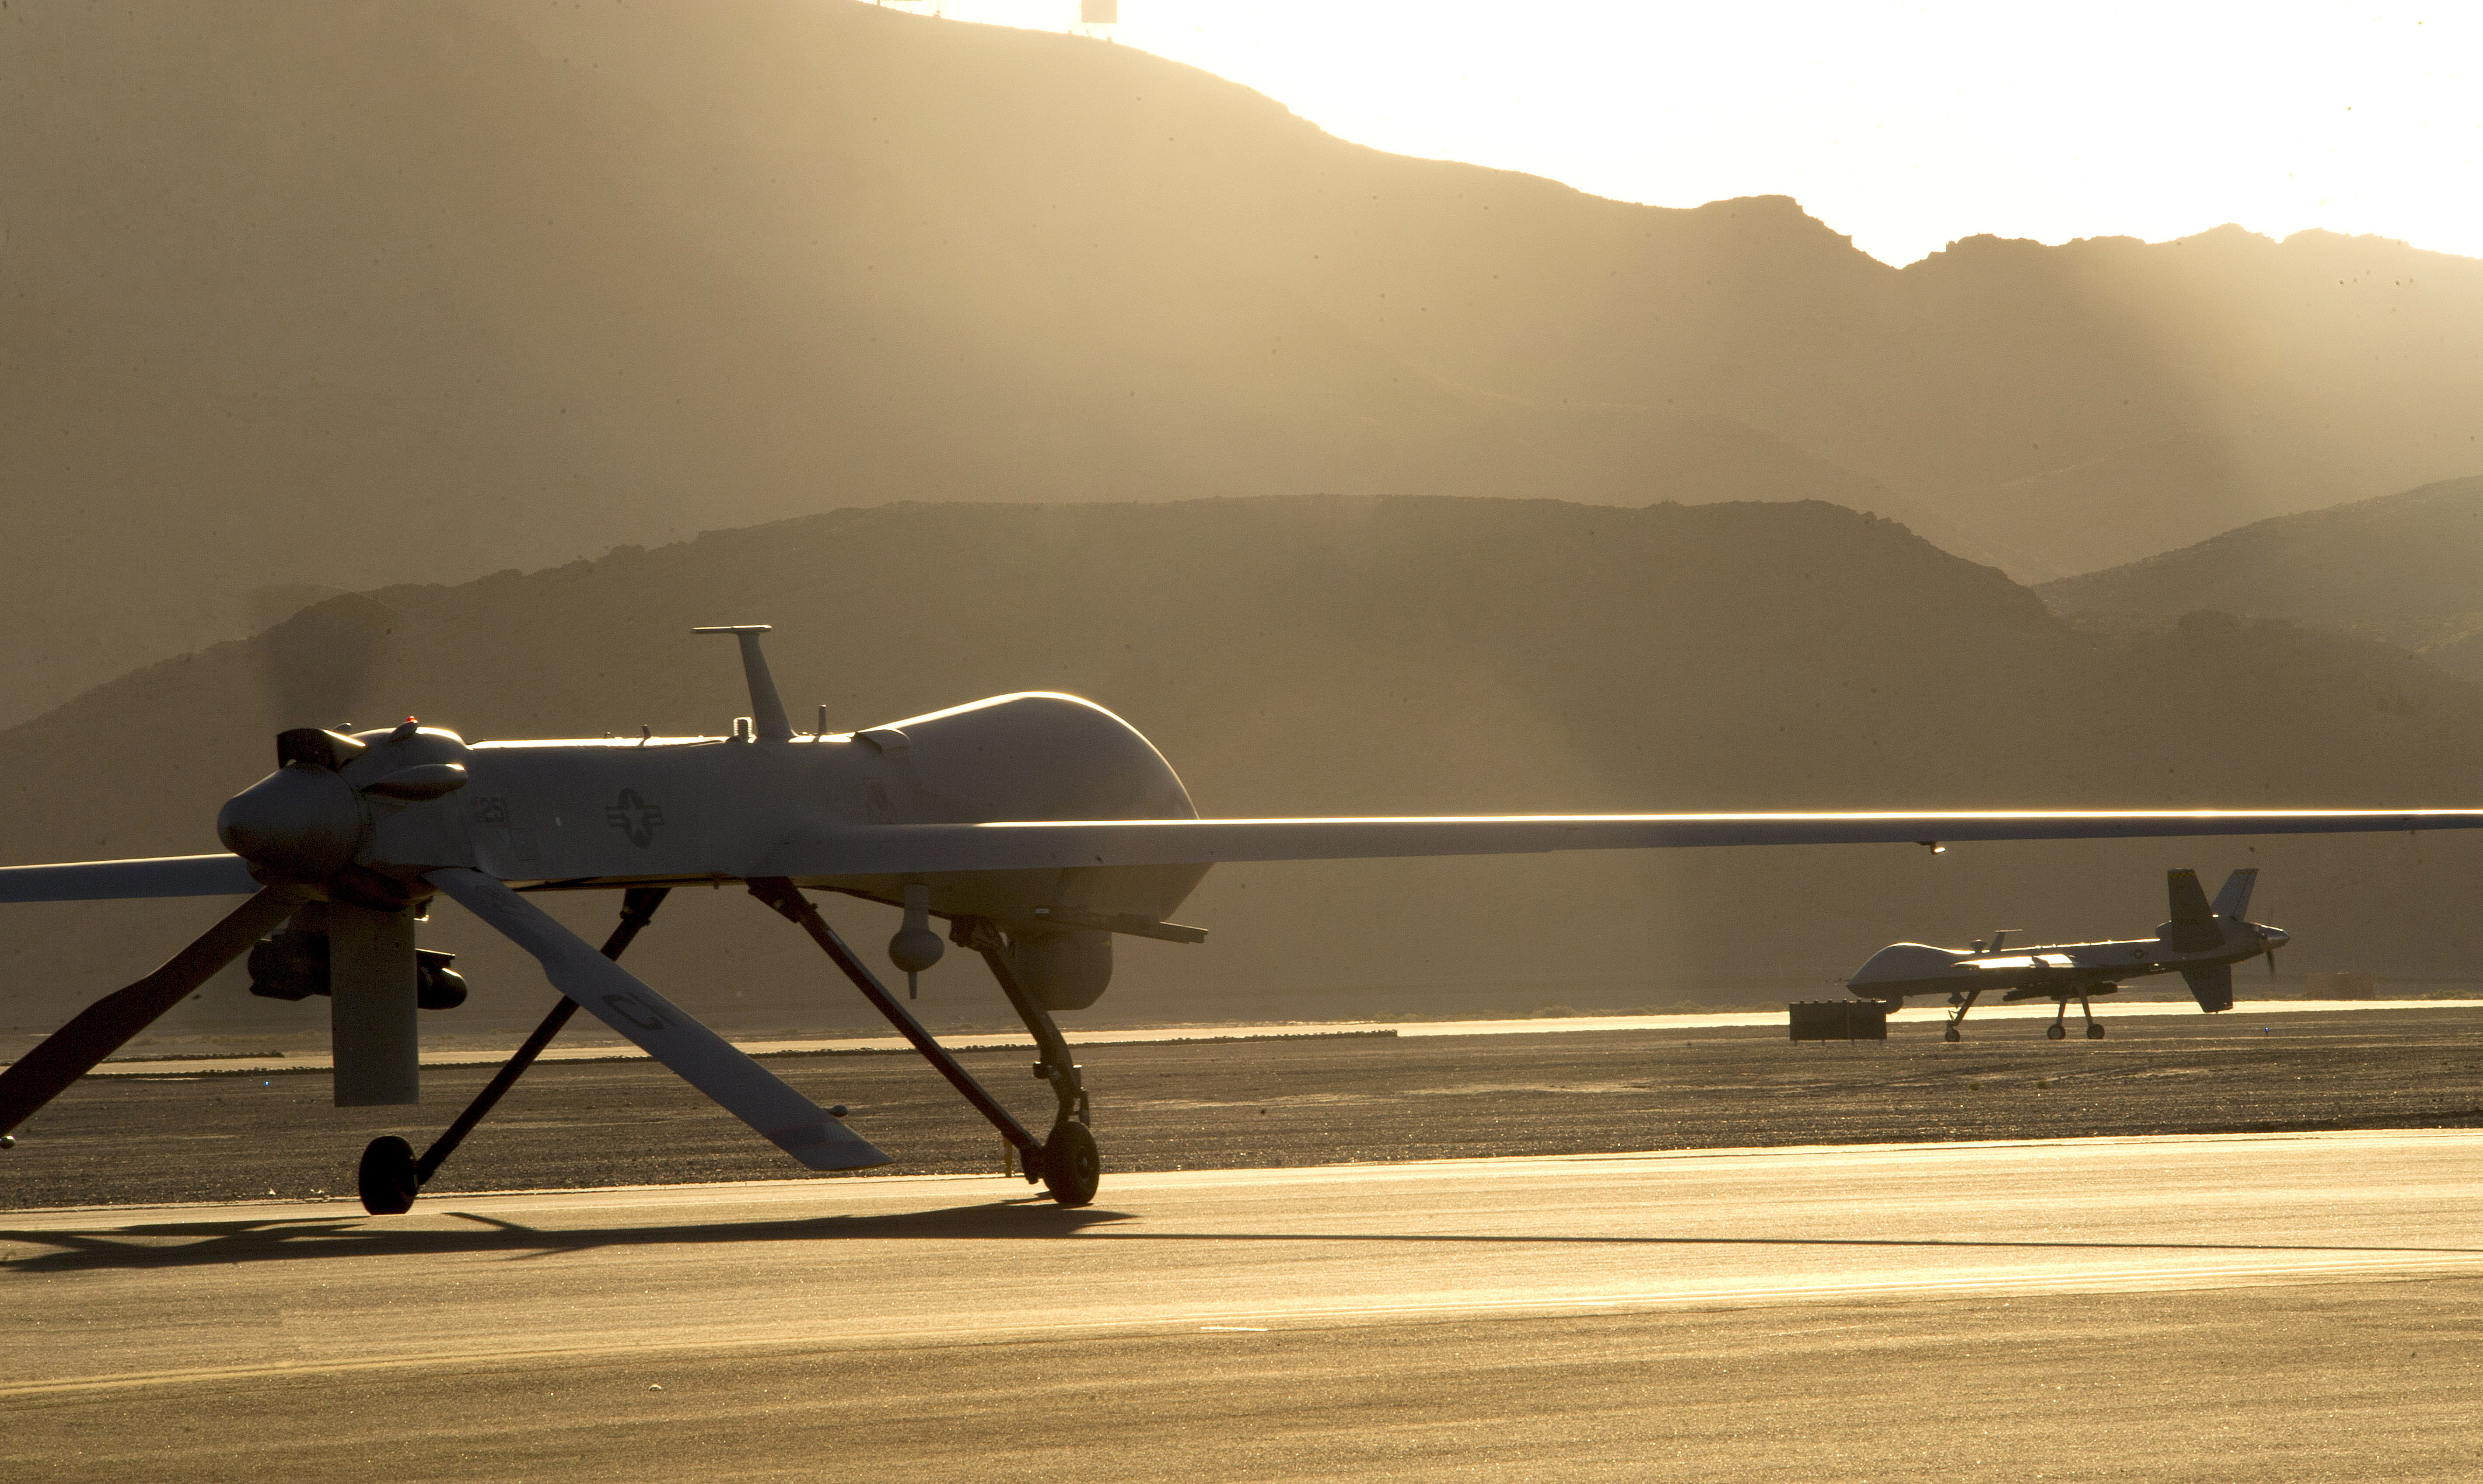 An MQ-1B Predator drone (left) and an MQ-9 Reaper drone taxi to the runway in preparation for takeoff from Creech Air Force Base in Nevada on June 13, 2014. (Airman 1st Class Christian Clausen/U.S. Air Force)